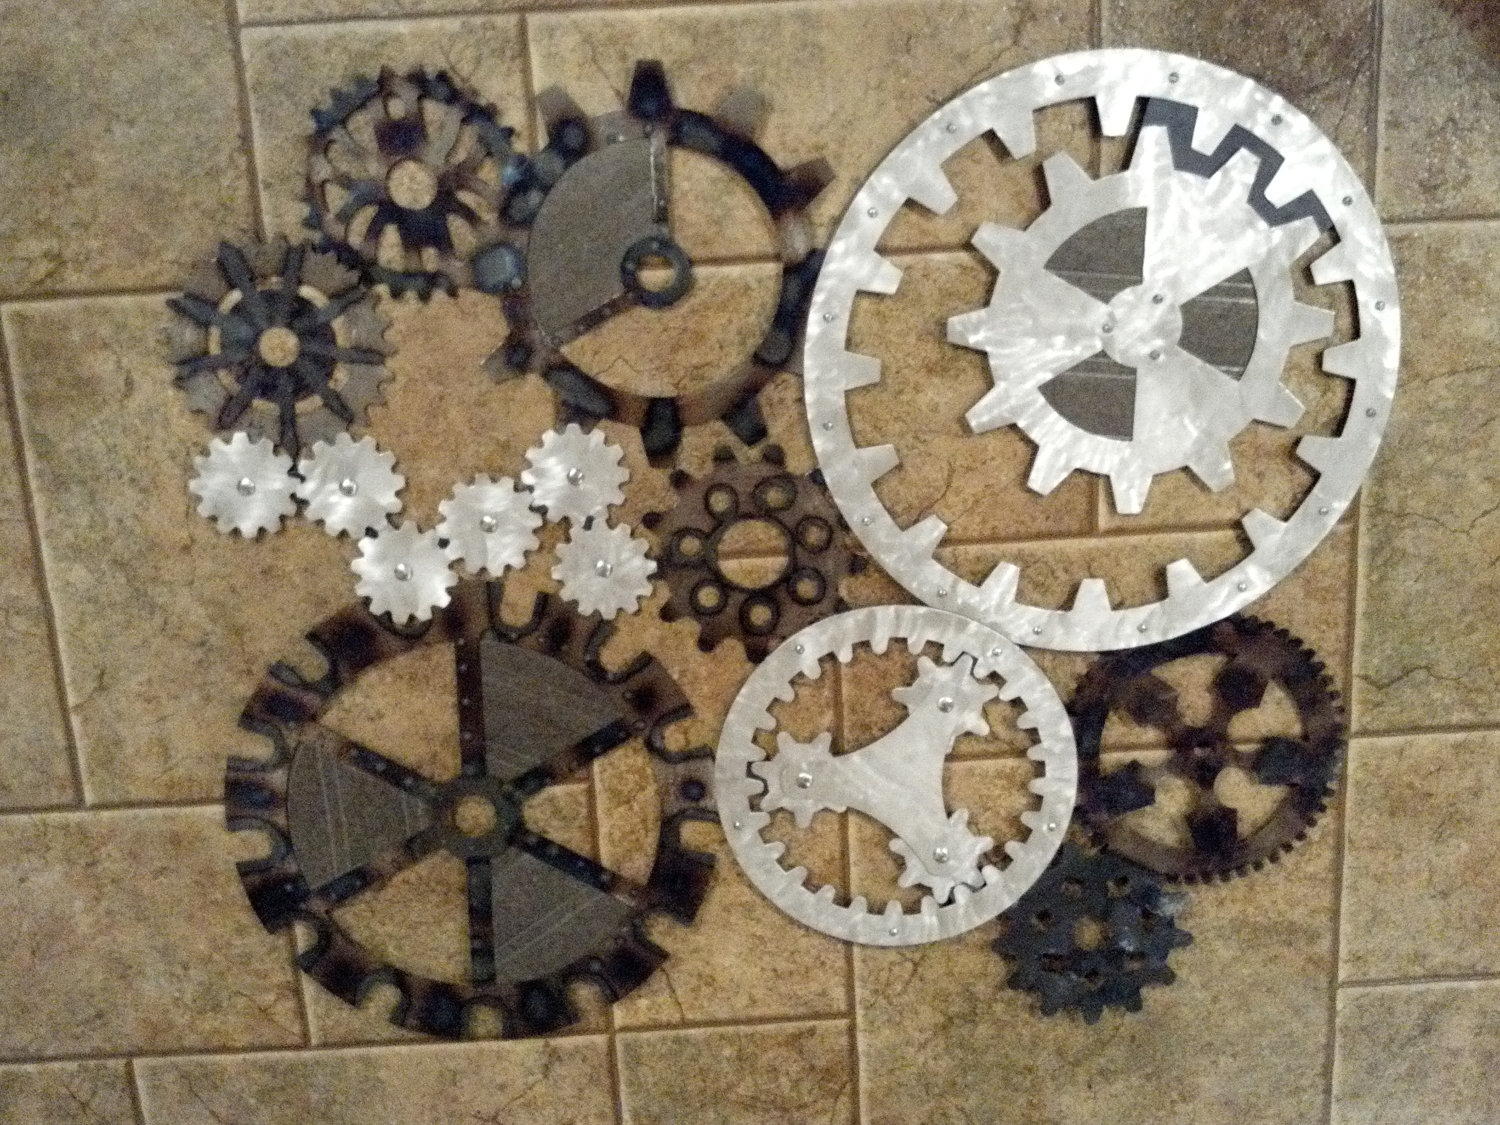 Gears Art Industrial Steampunk Wall Decor Made Darkhorsegarage New Throughout Most Popular Steampunk Wall Art (View 7 of 20)